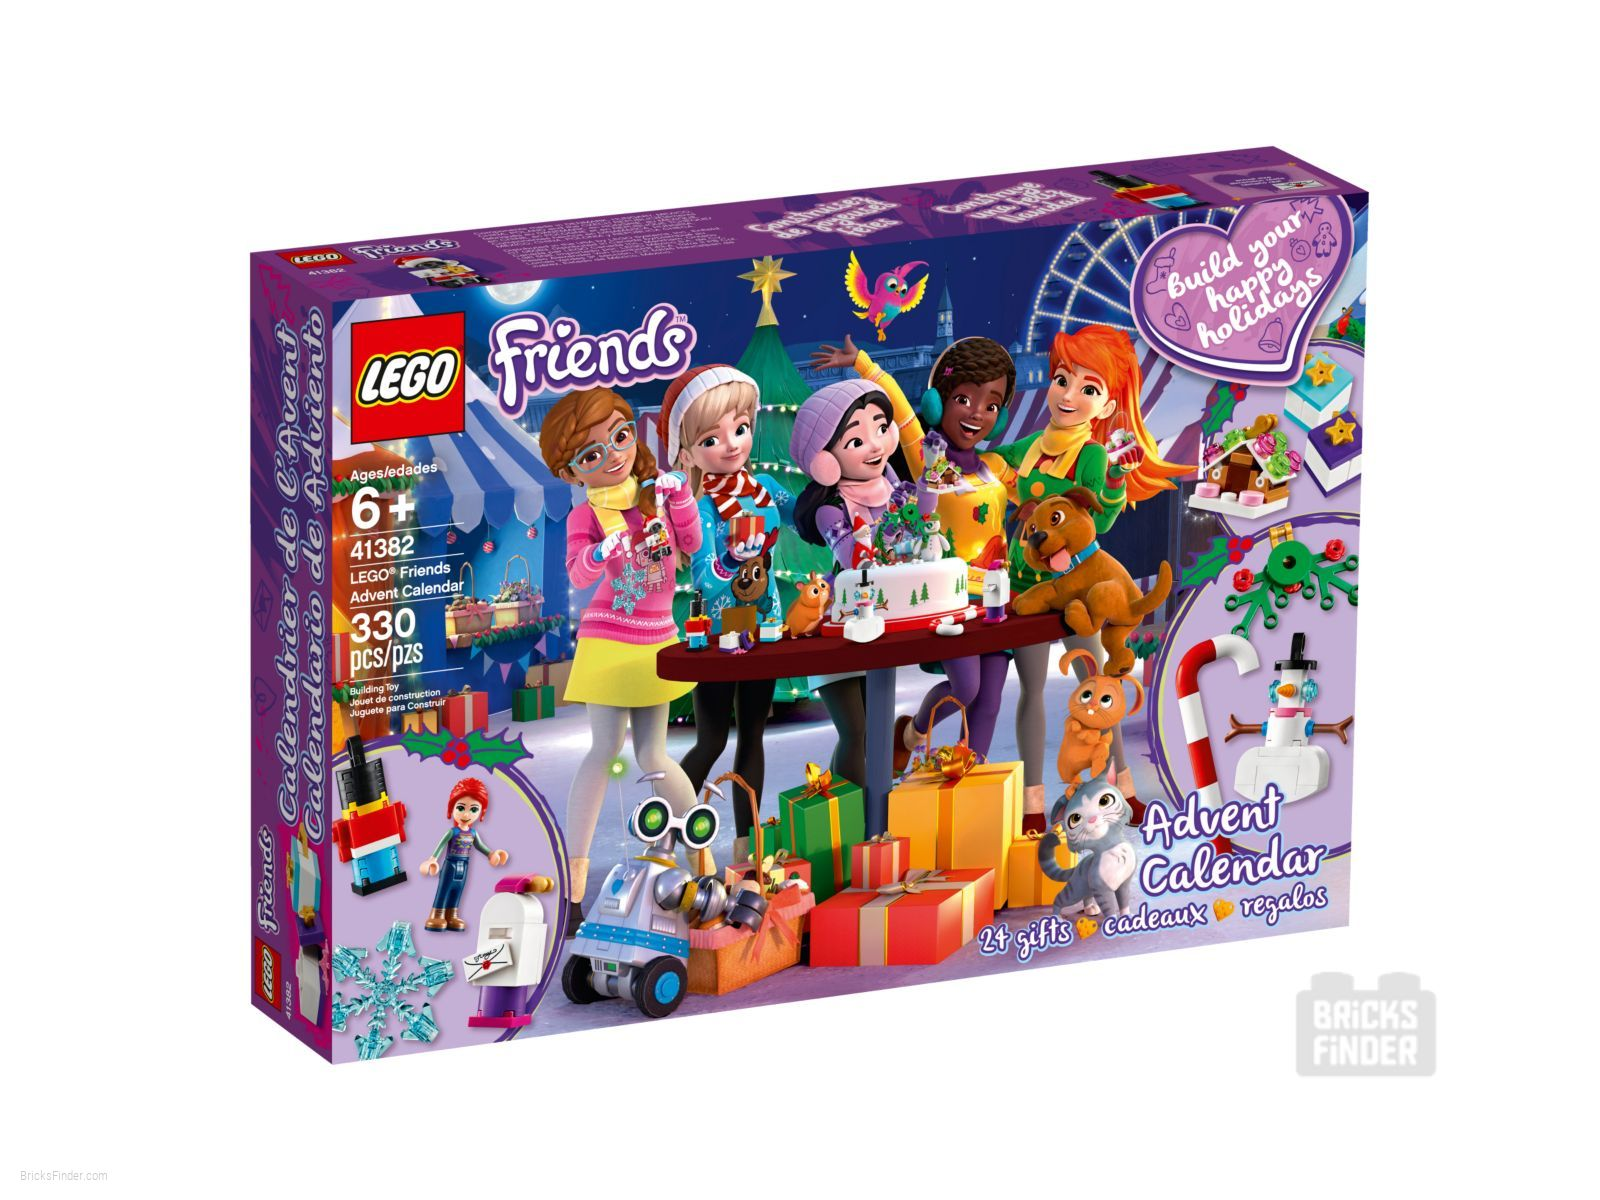 Calendrier 2020 Disney.Lego 41382 Friends Advent Calendar 2020 Friends